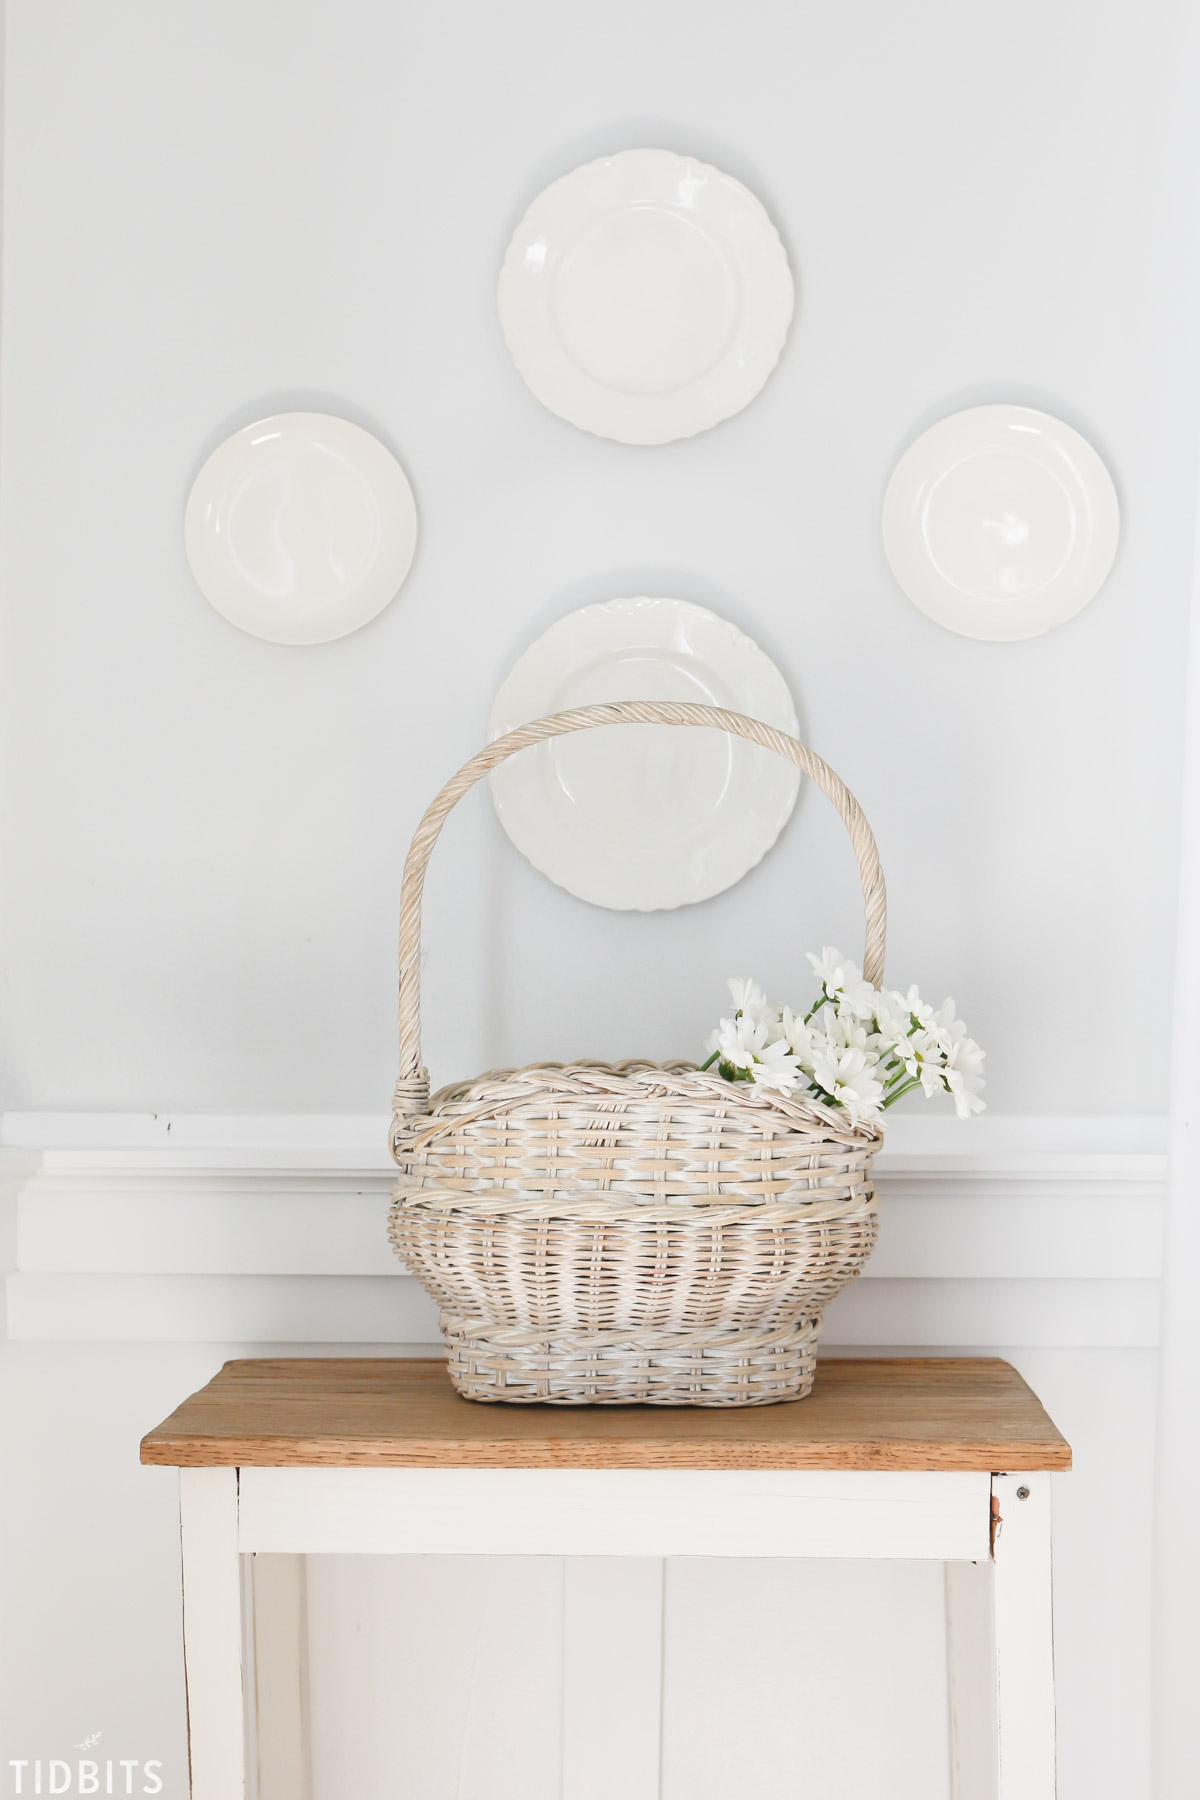 Do It Yourself Home Decorating Ideas: How To Hang Plates On The Wall